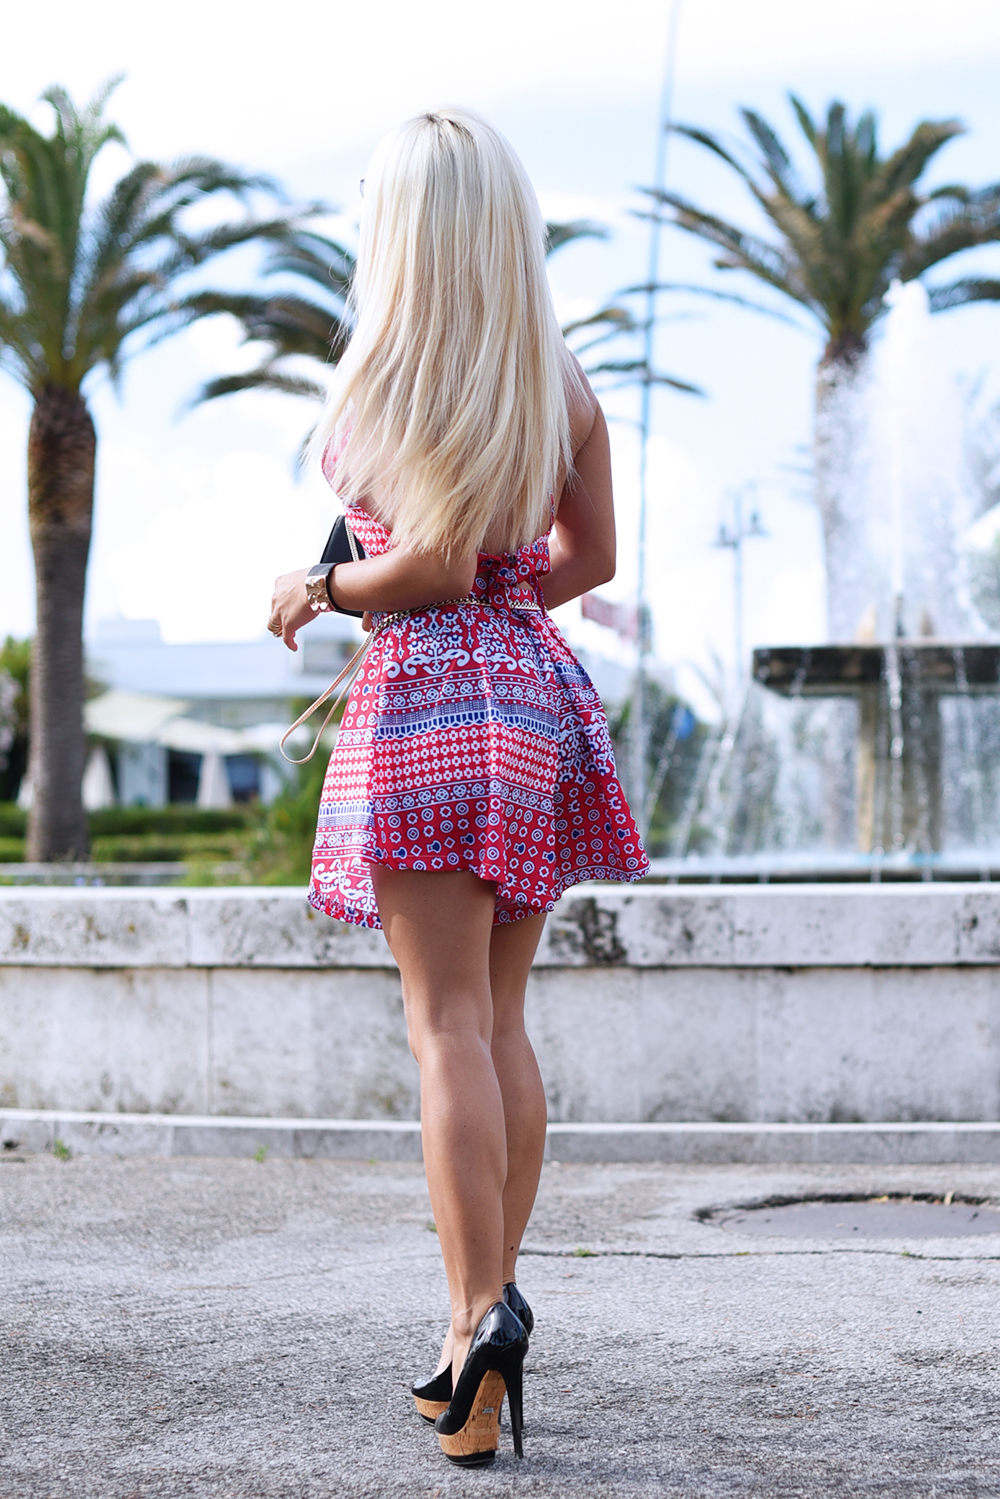 Backless crop top, crop top summer 2015, come indossare i crop top, crop top trend how to wear, high waist shorts, best outfit summer 2015 fashion blogger It-Girl by Eleonora Petrella